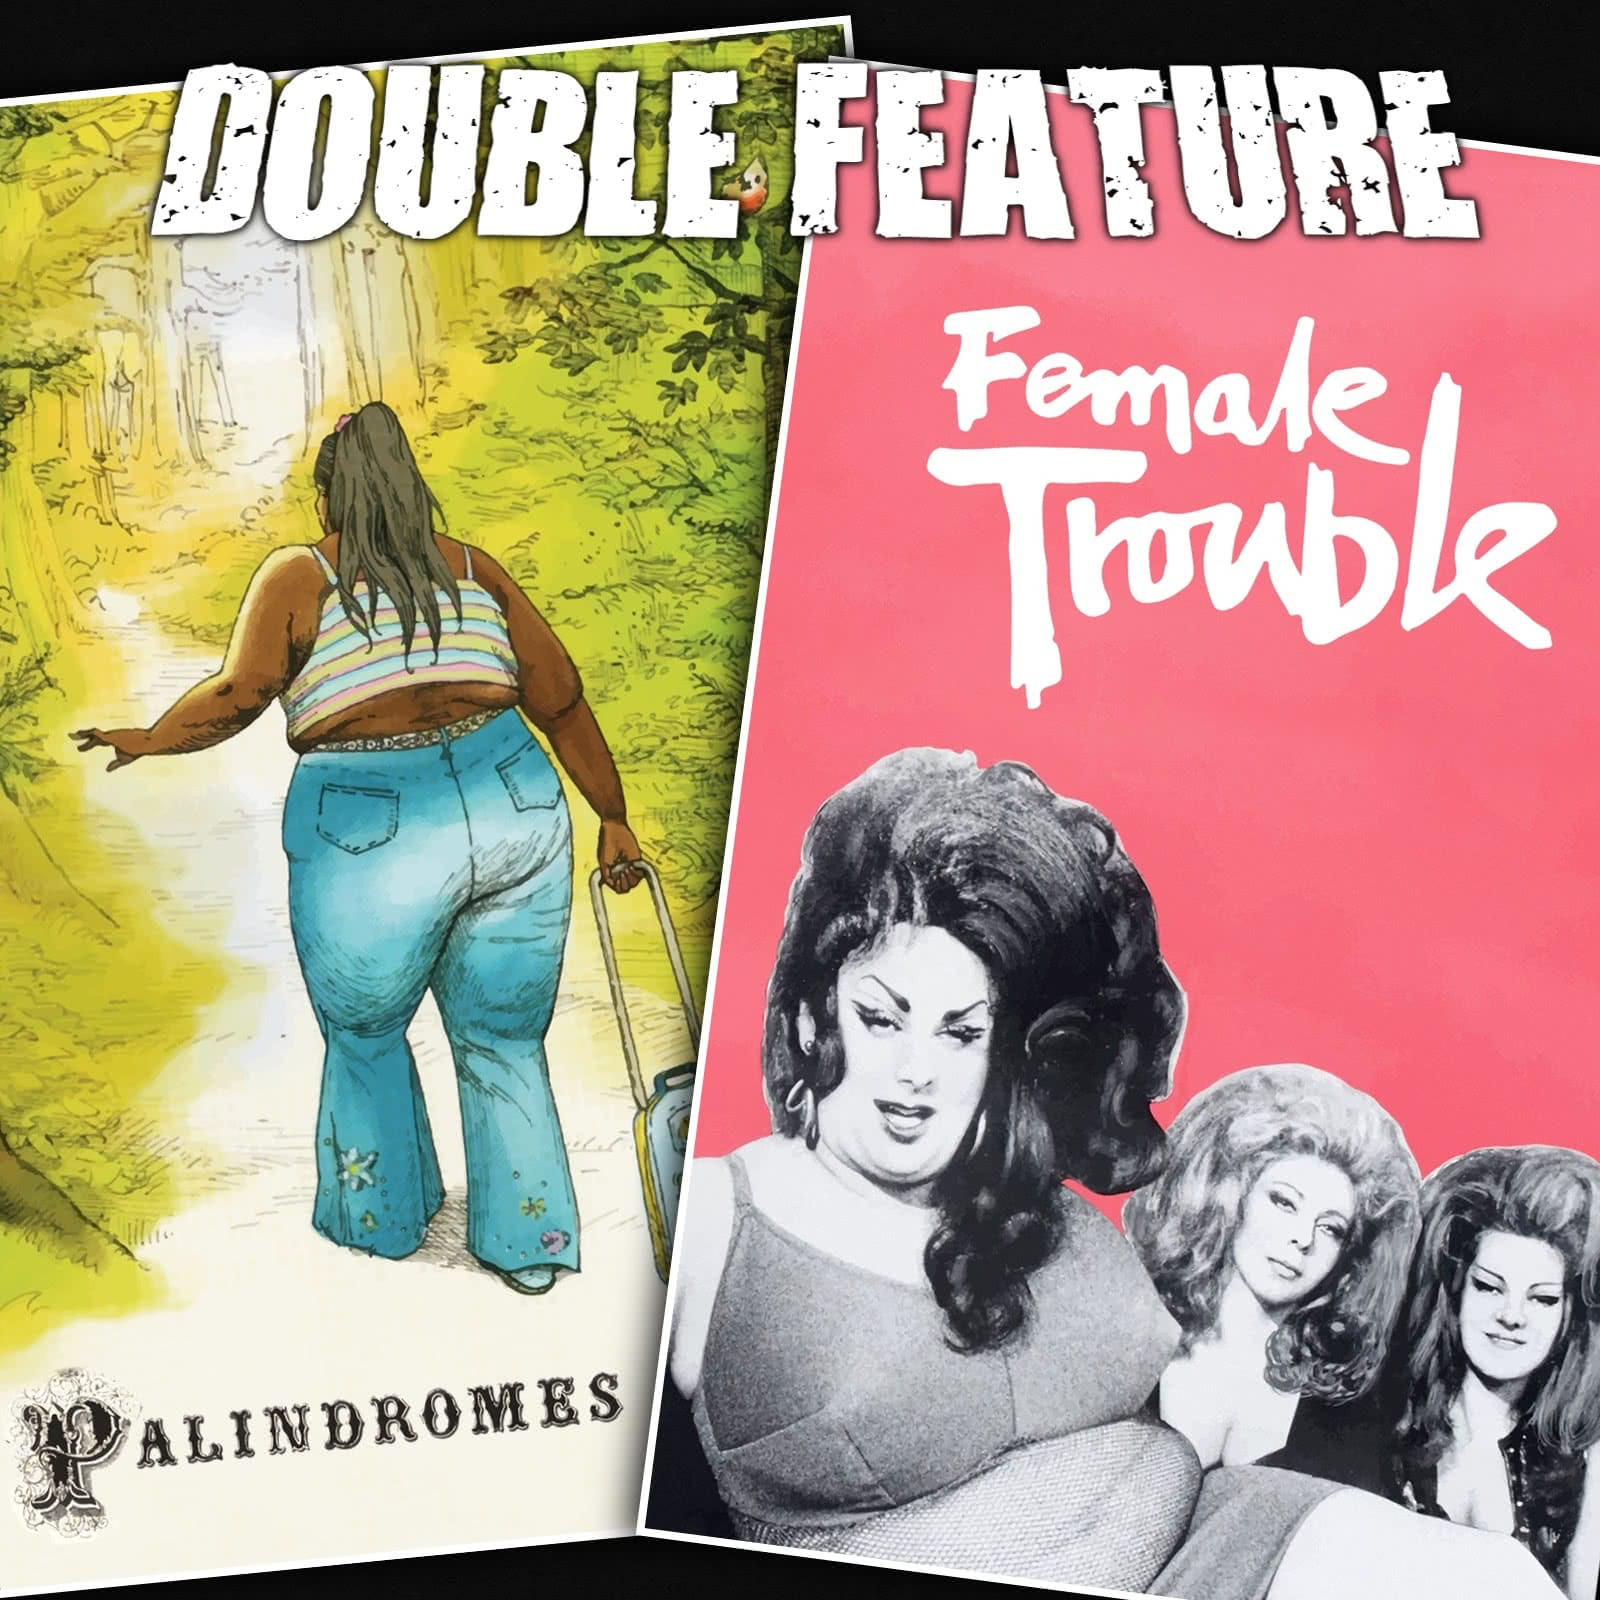 Palindromes + Female Trouble